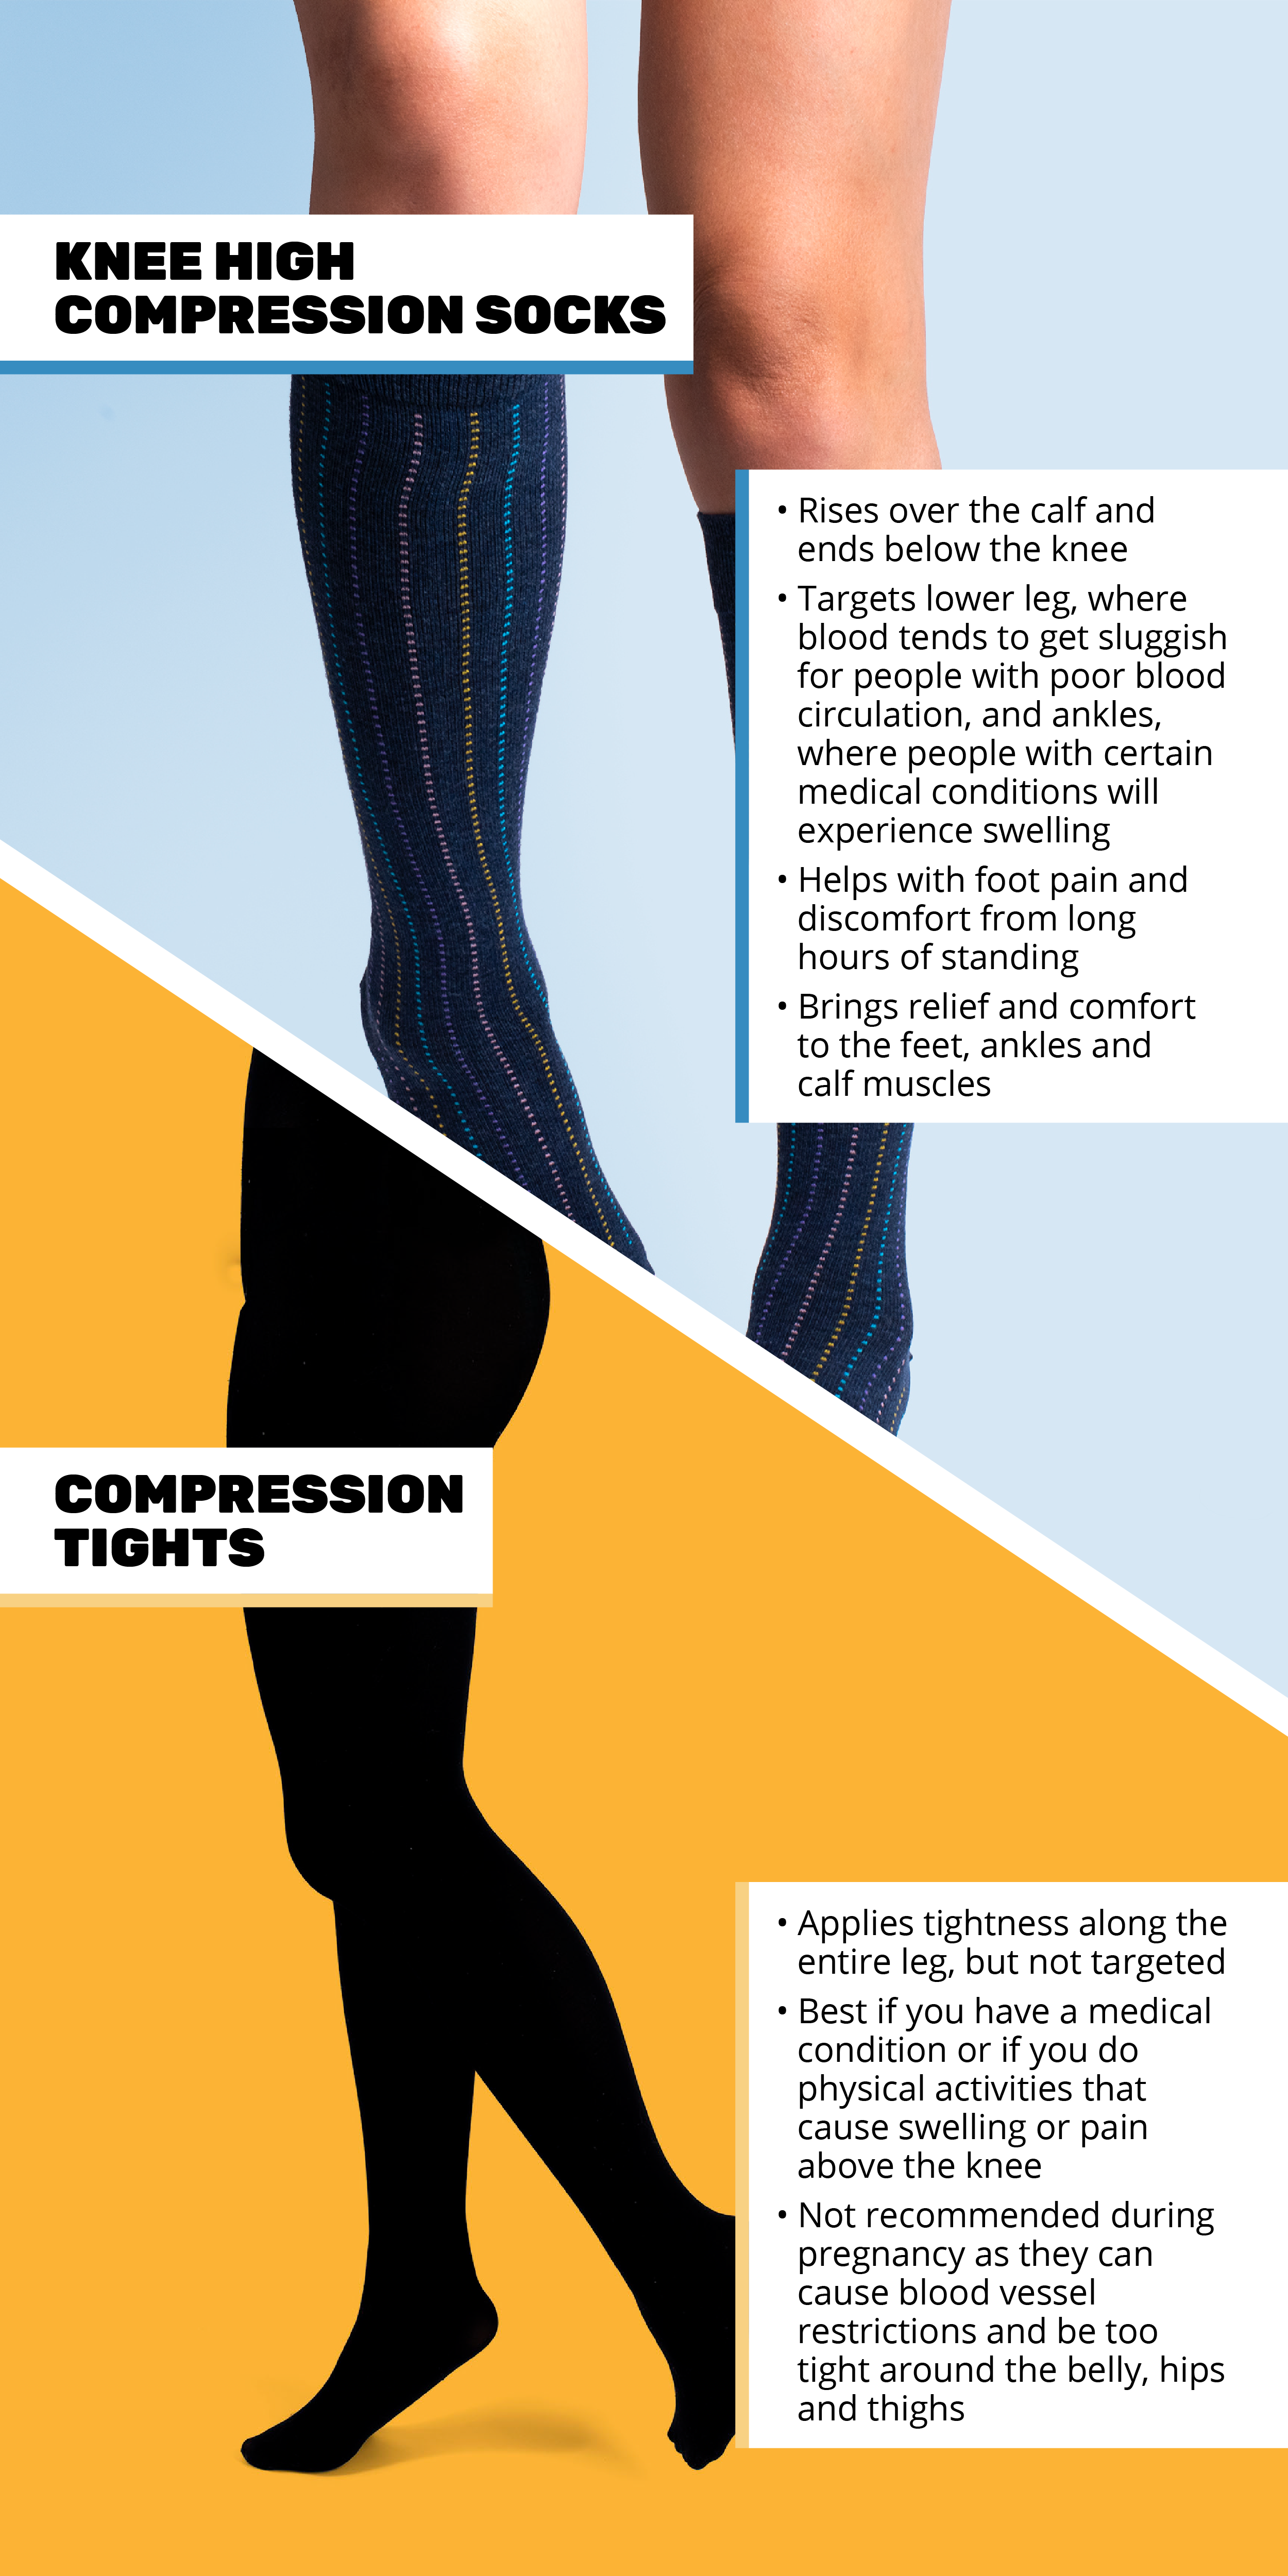 Compression sock benefits, where to buy compression socks, should I wear compression socks or tights, knee high, pregnancy, calf